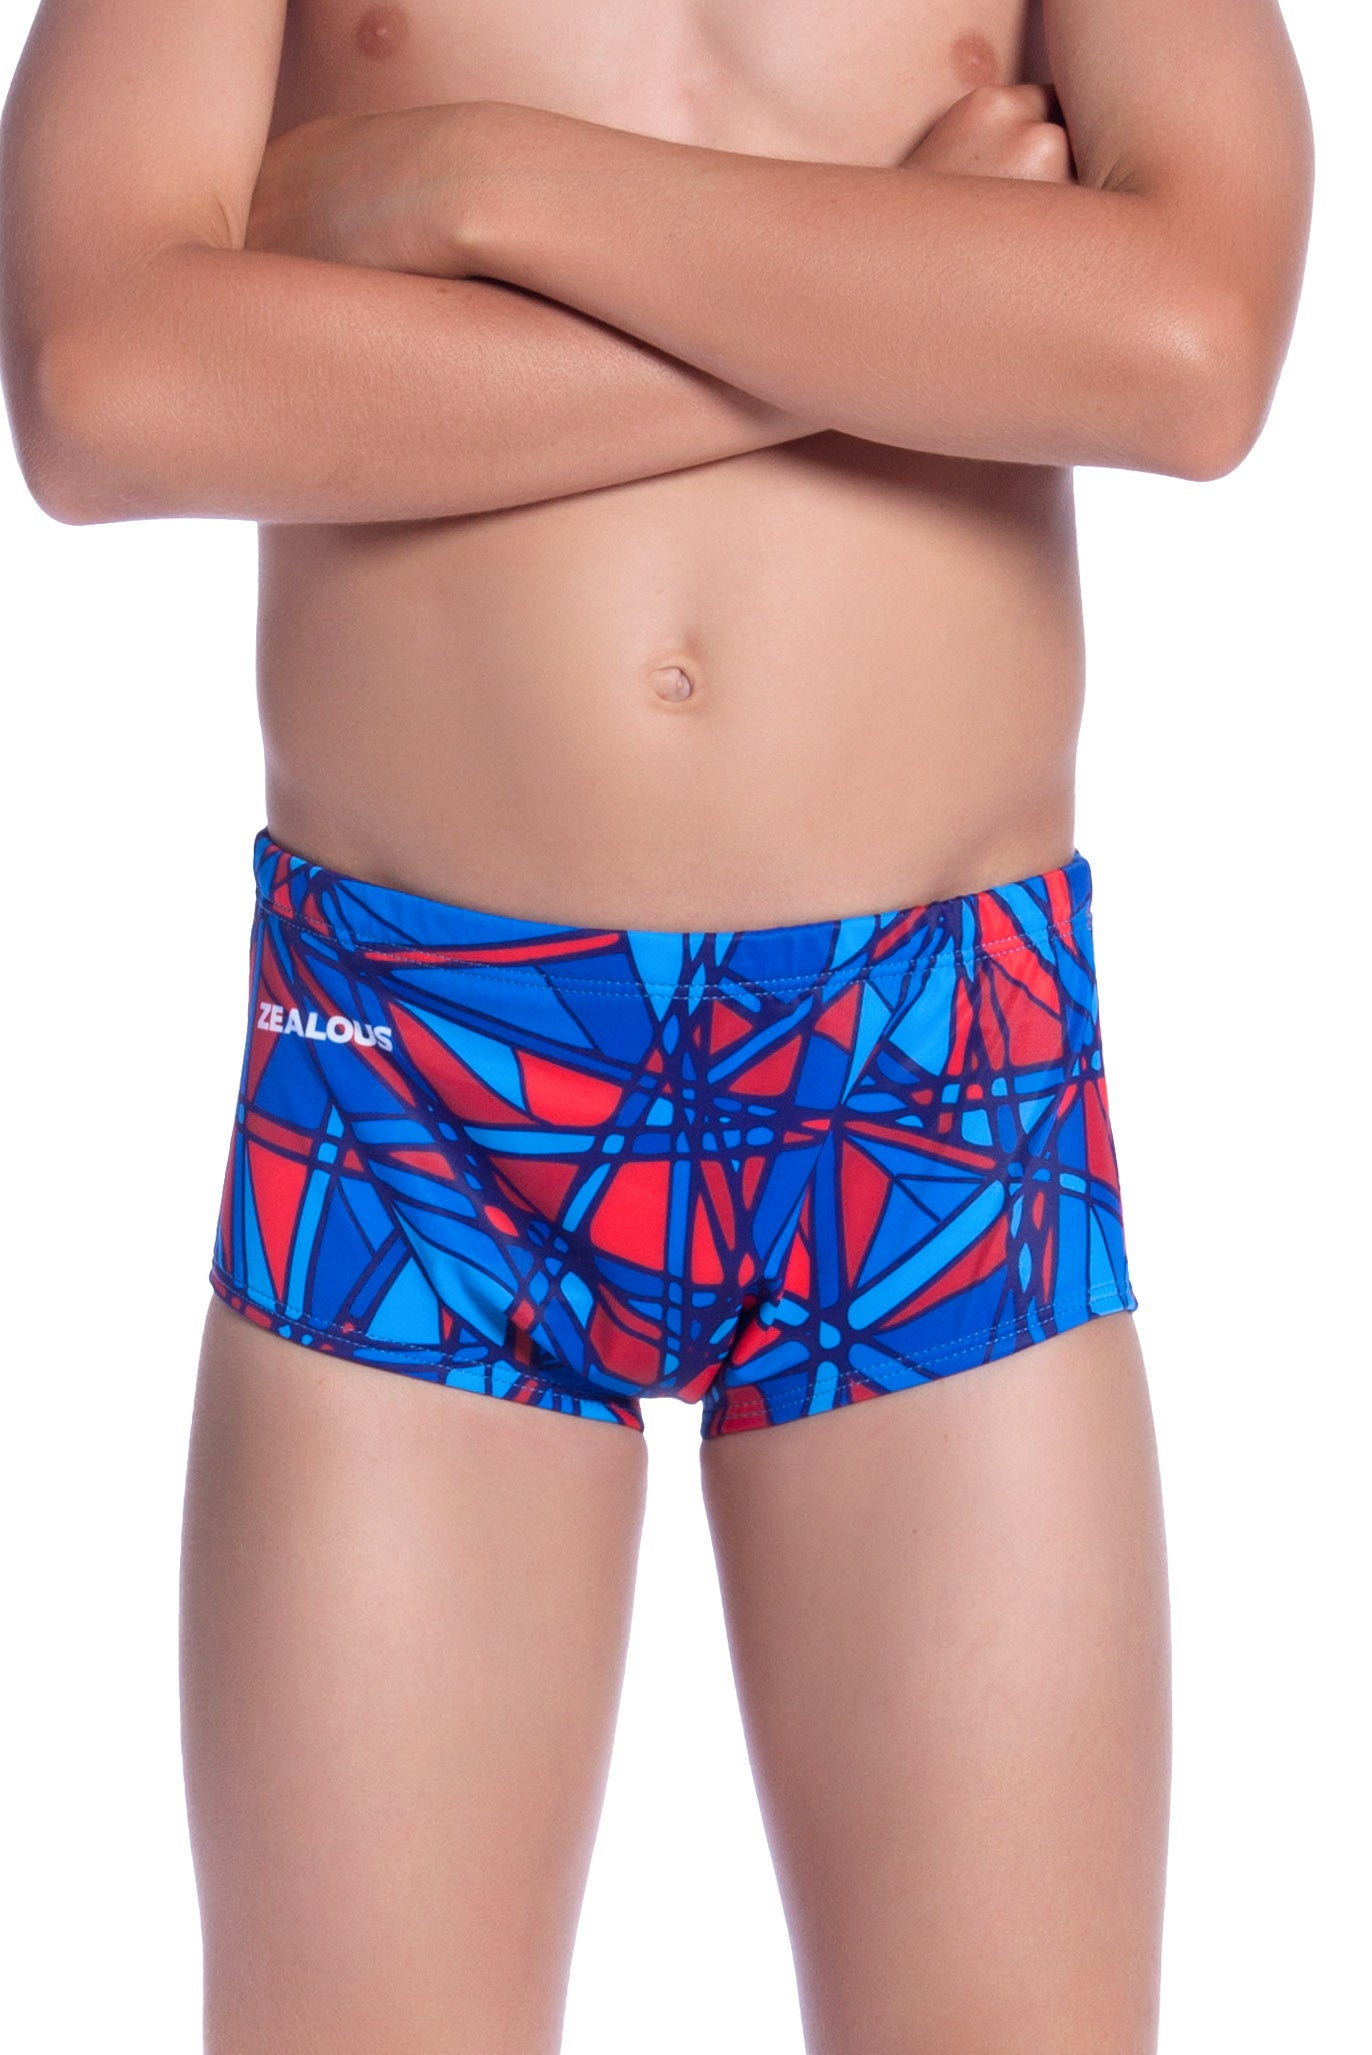 Mayhem Boys Trunks - Shop Zealous Training Swimwear